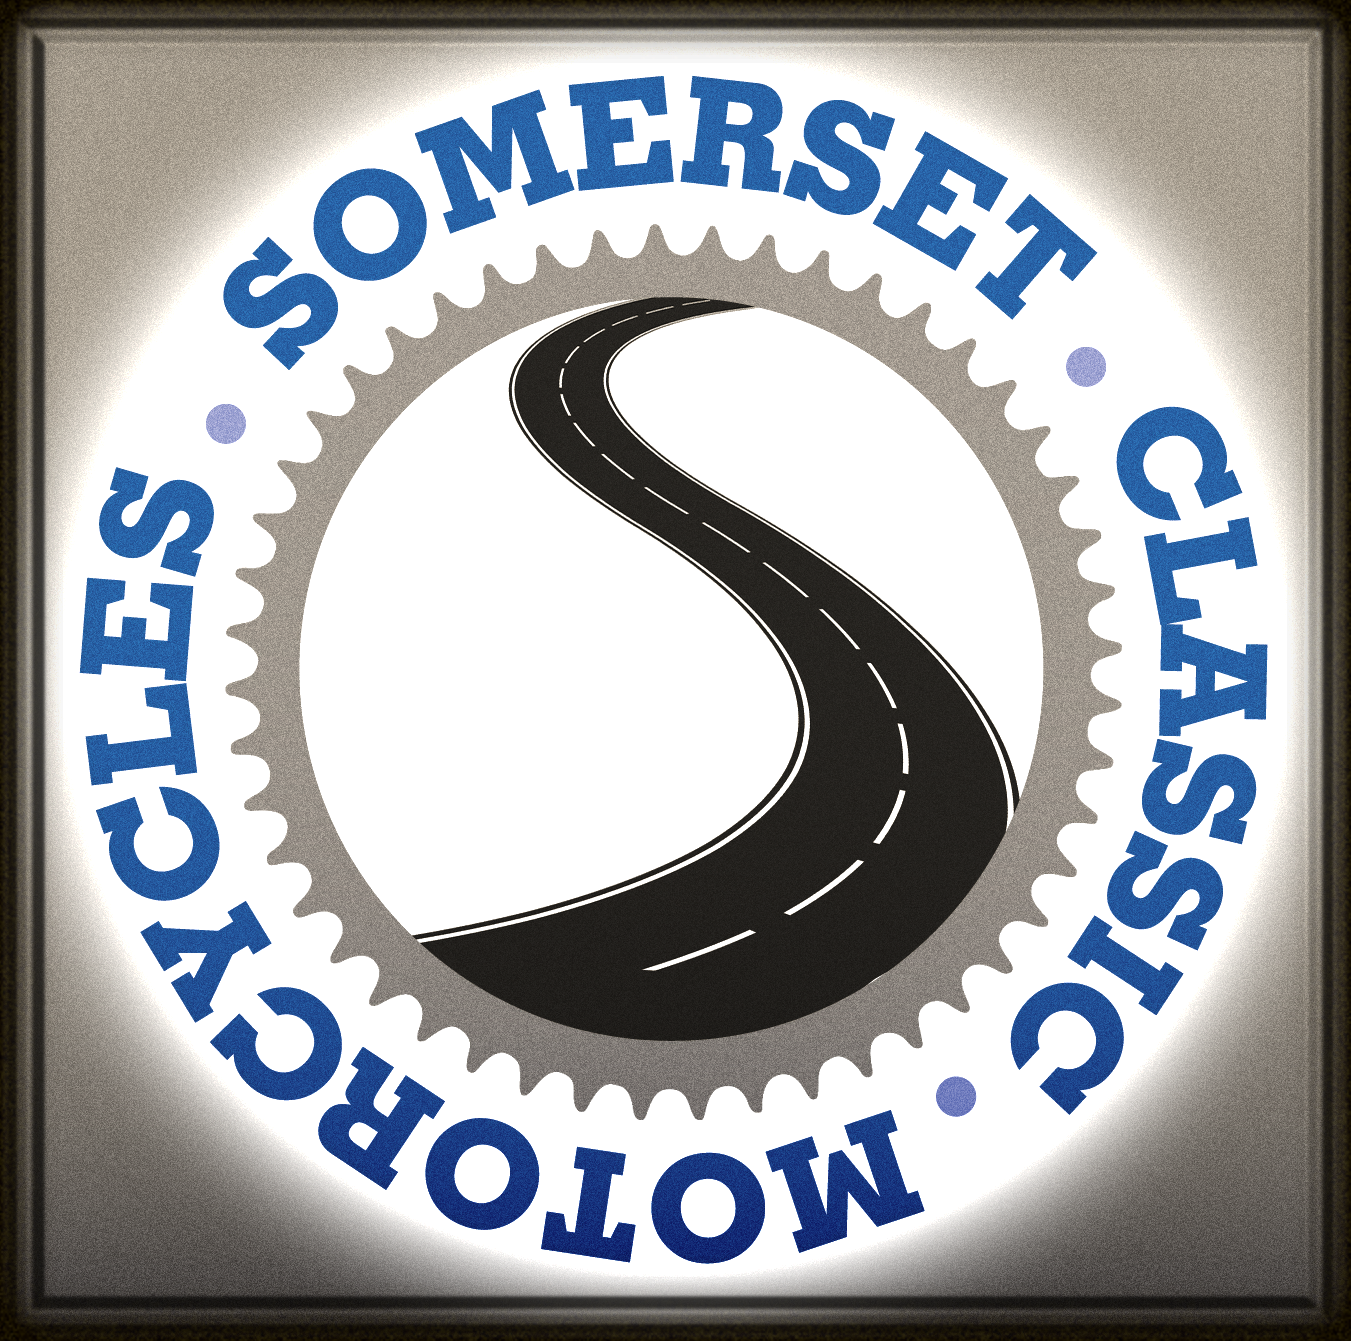 Somerset Classic Motorcycles Ltd.